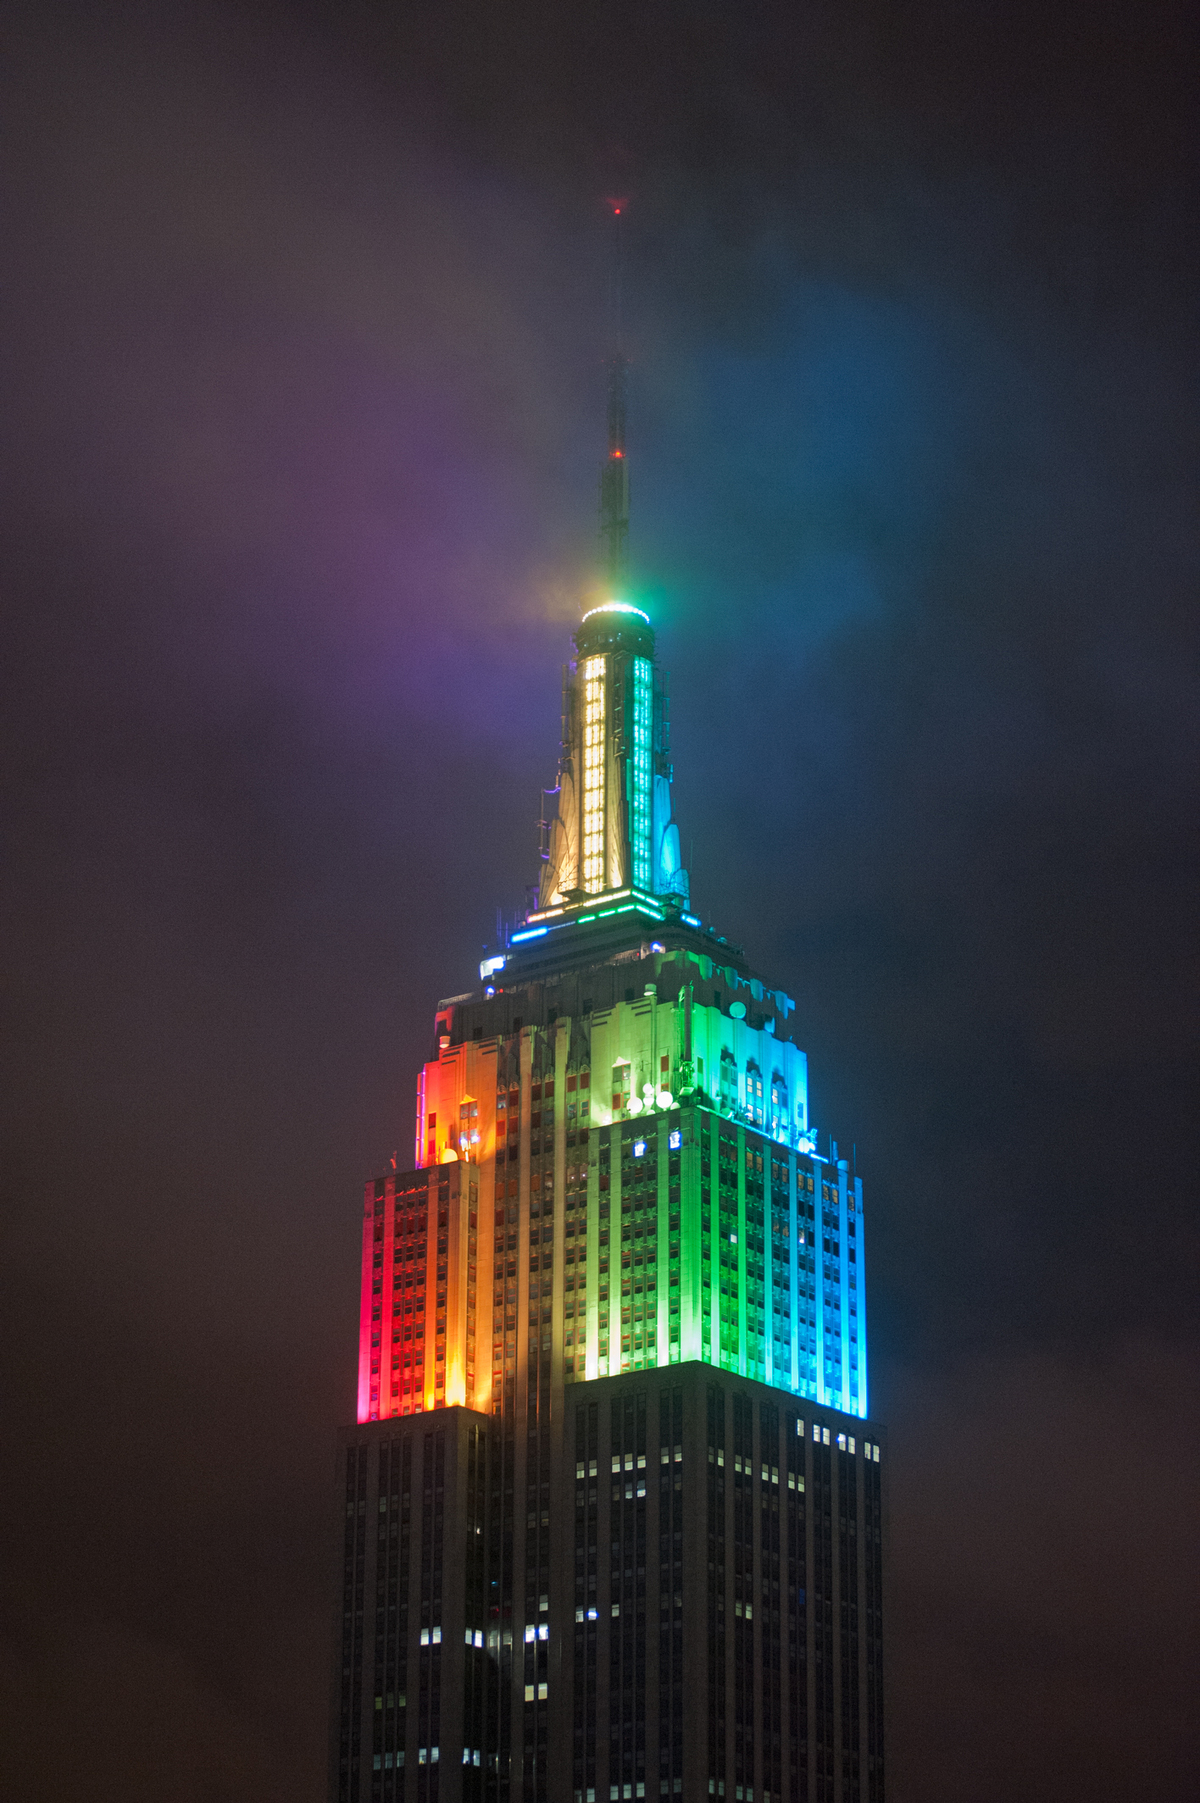 Night lights designs - Rainbow Color Light Design On Empire State Building At Night